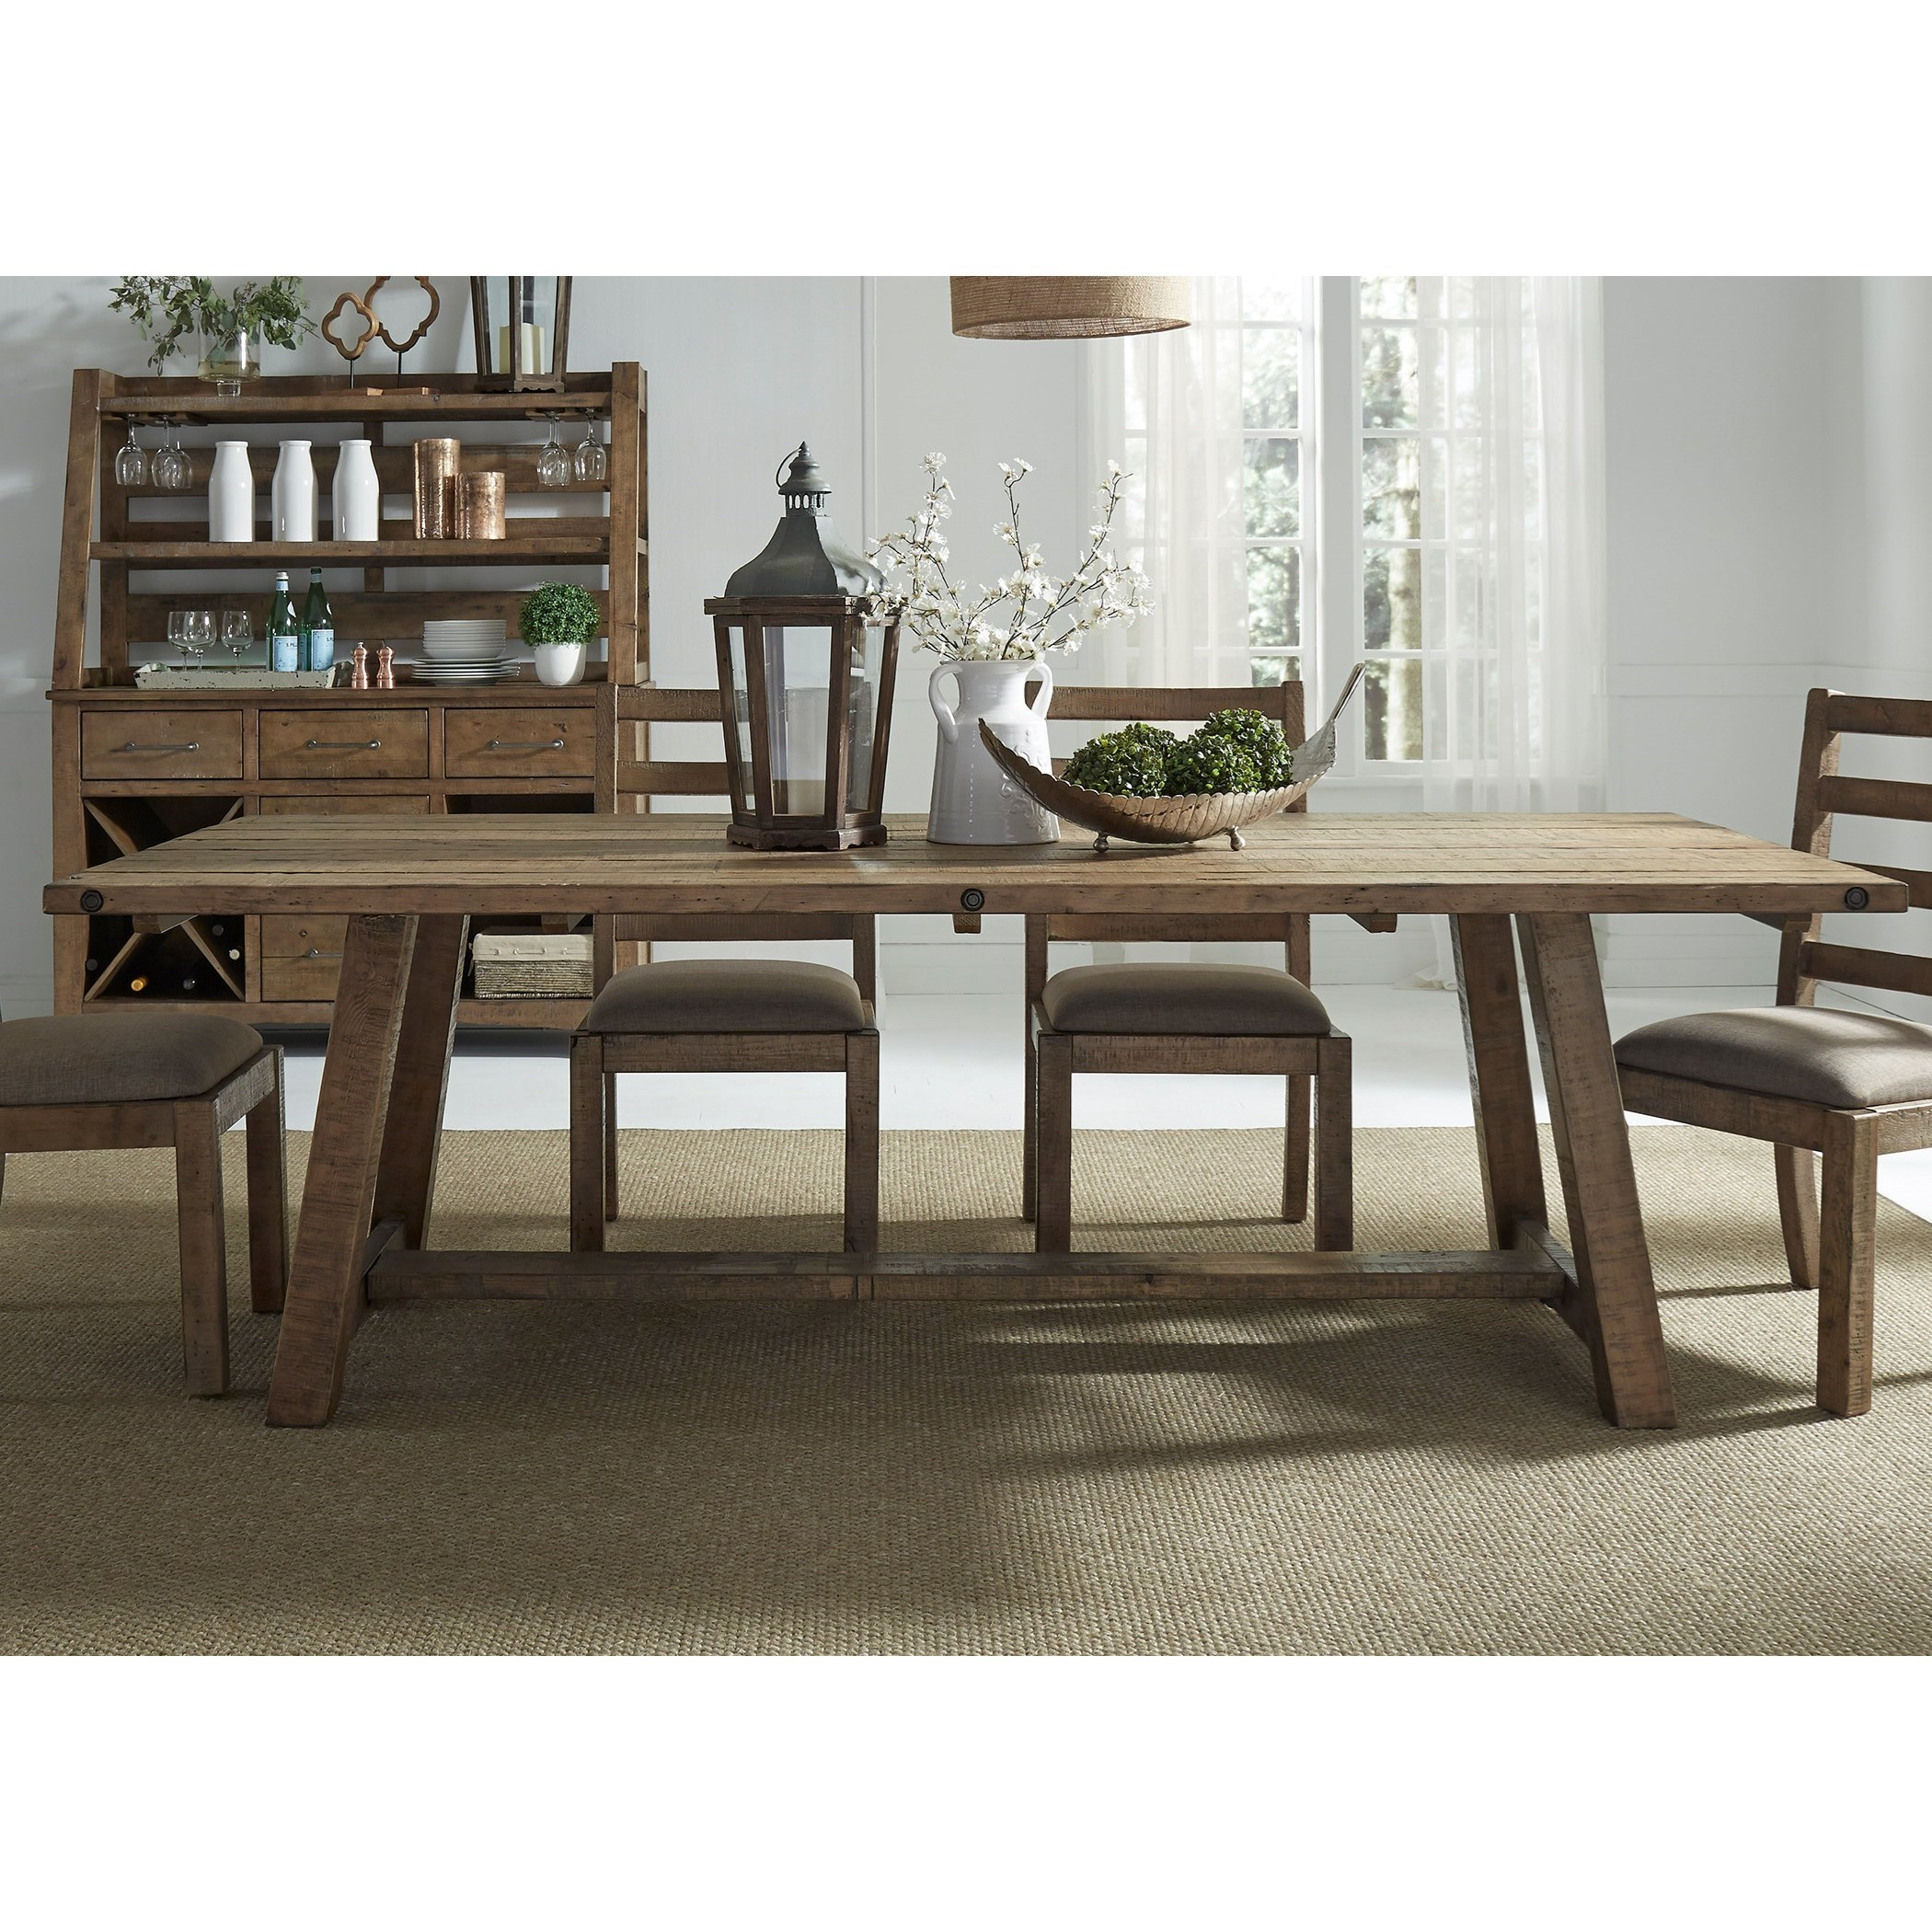 Prescott Valley Casual Dining Room Group  by Liberty Furniture at Lapeer Furniture & Mattress Center